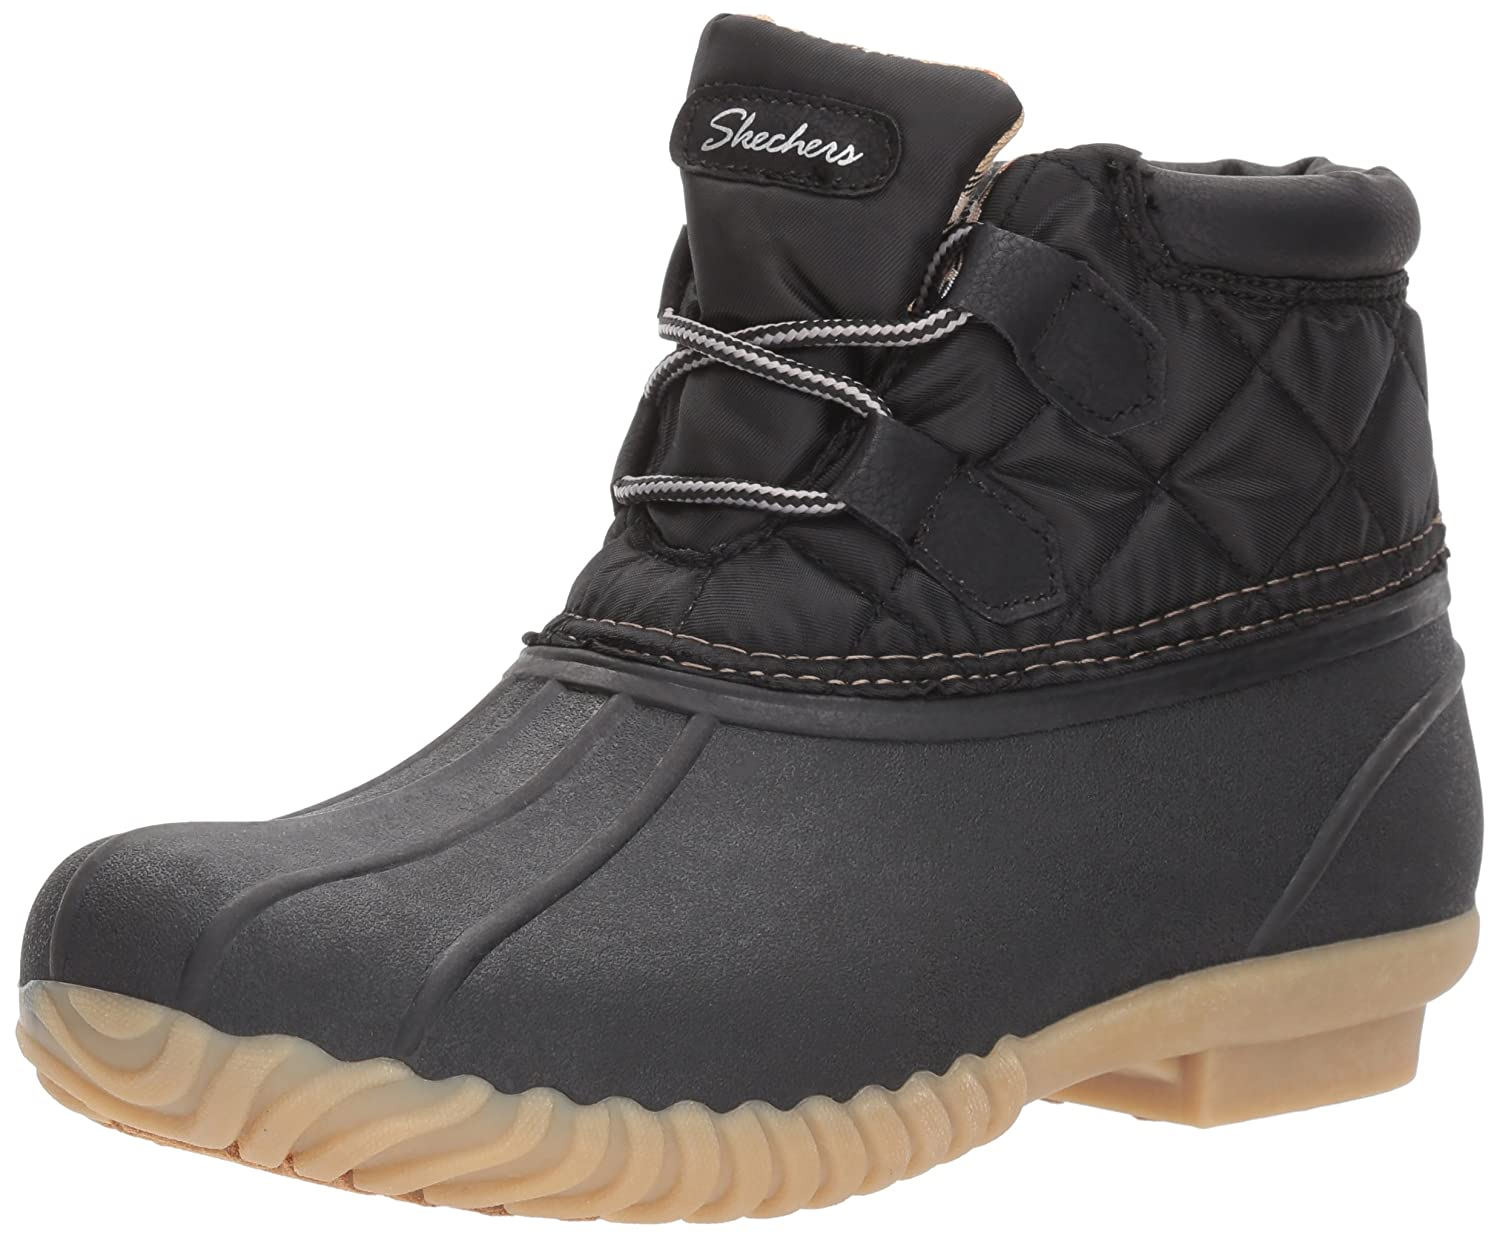 Skechers Frauen Stiefel  6 B(M) US|Black